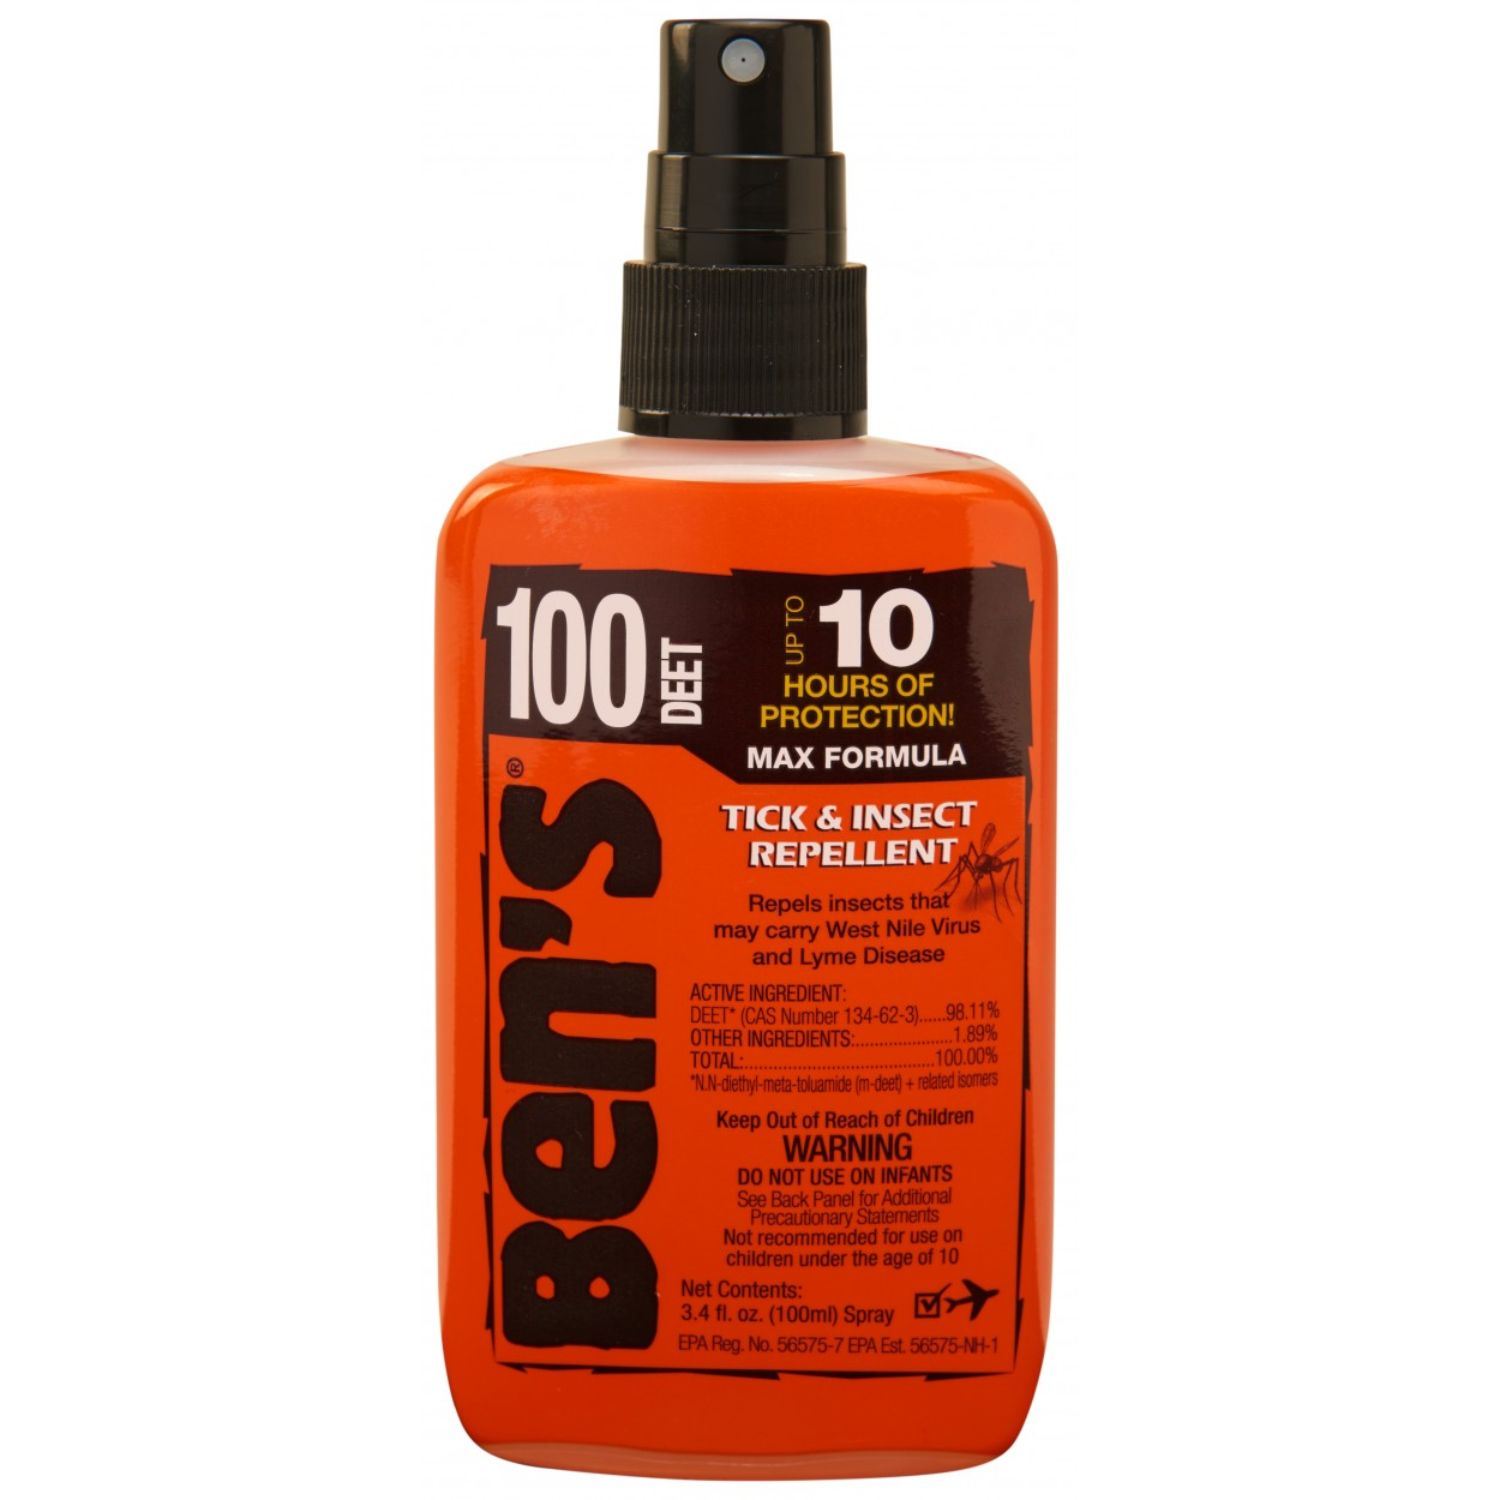 Bens 100 Tick and Insect Repellent Pump 3.4 oz